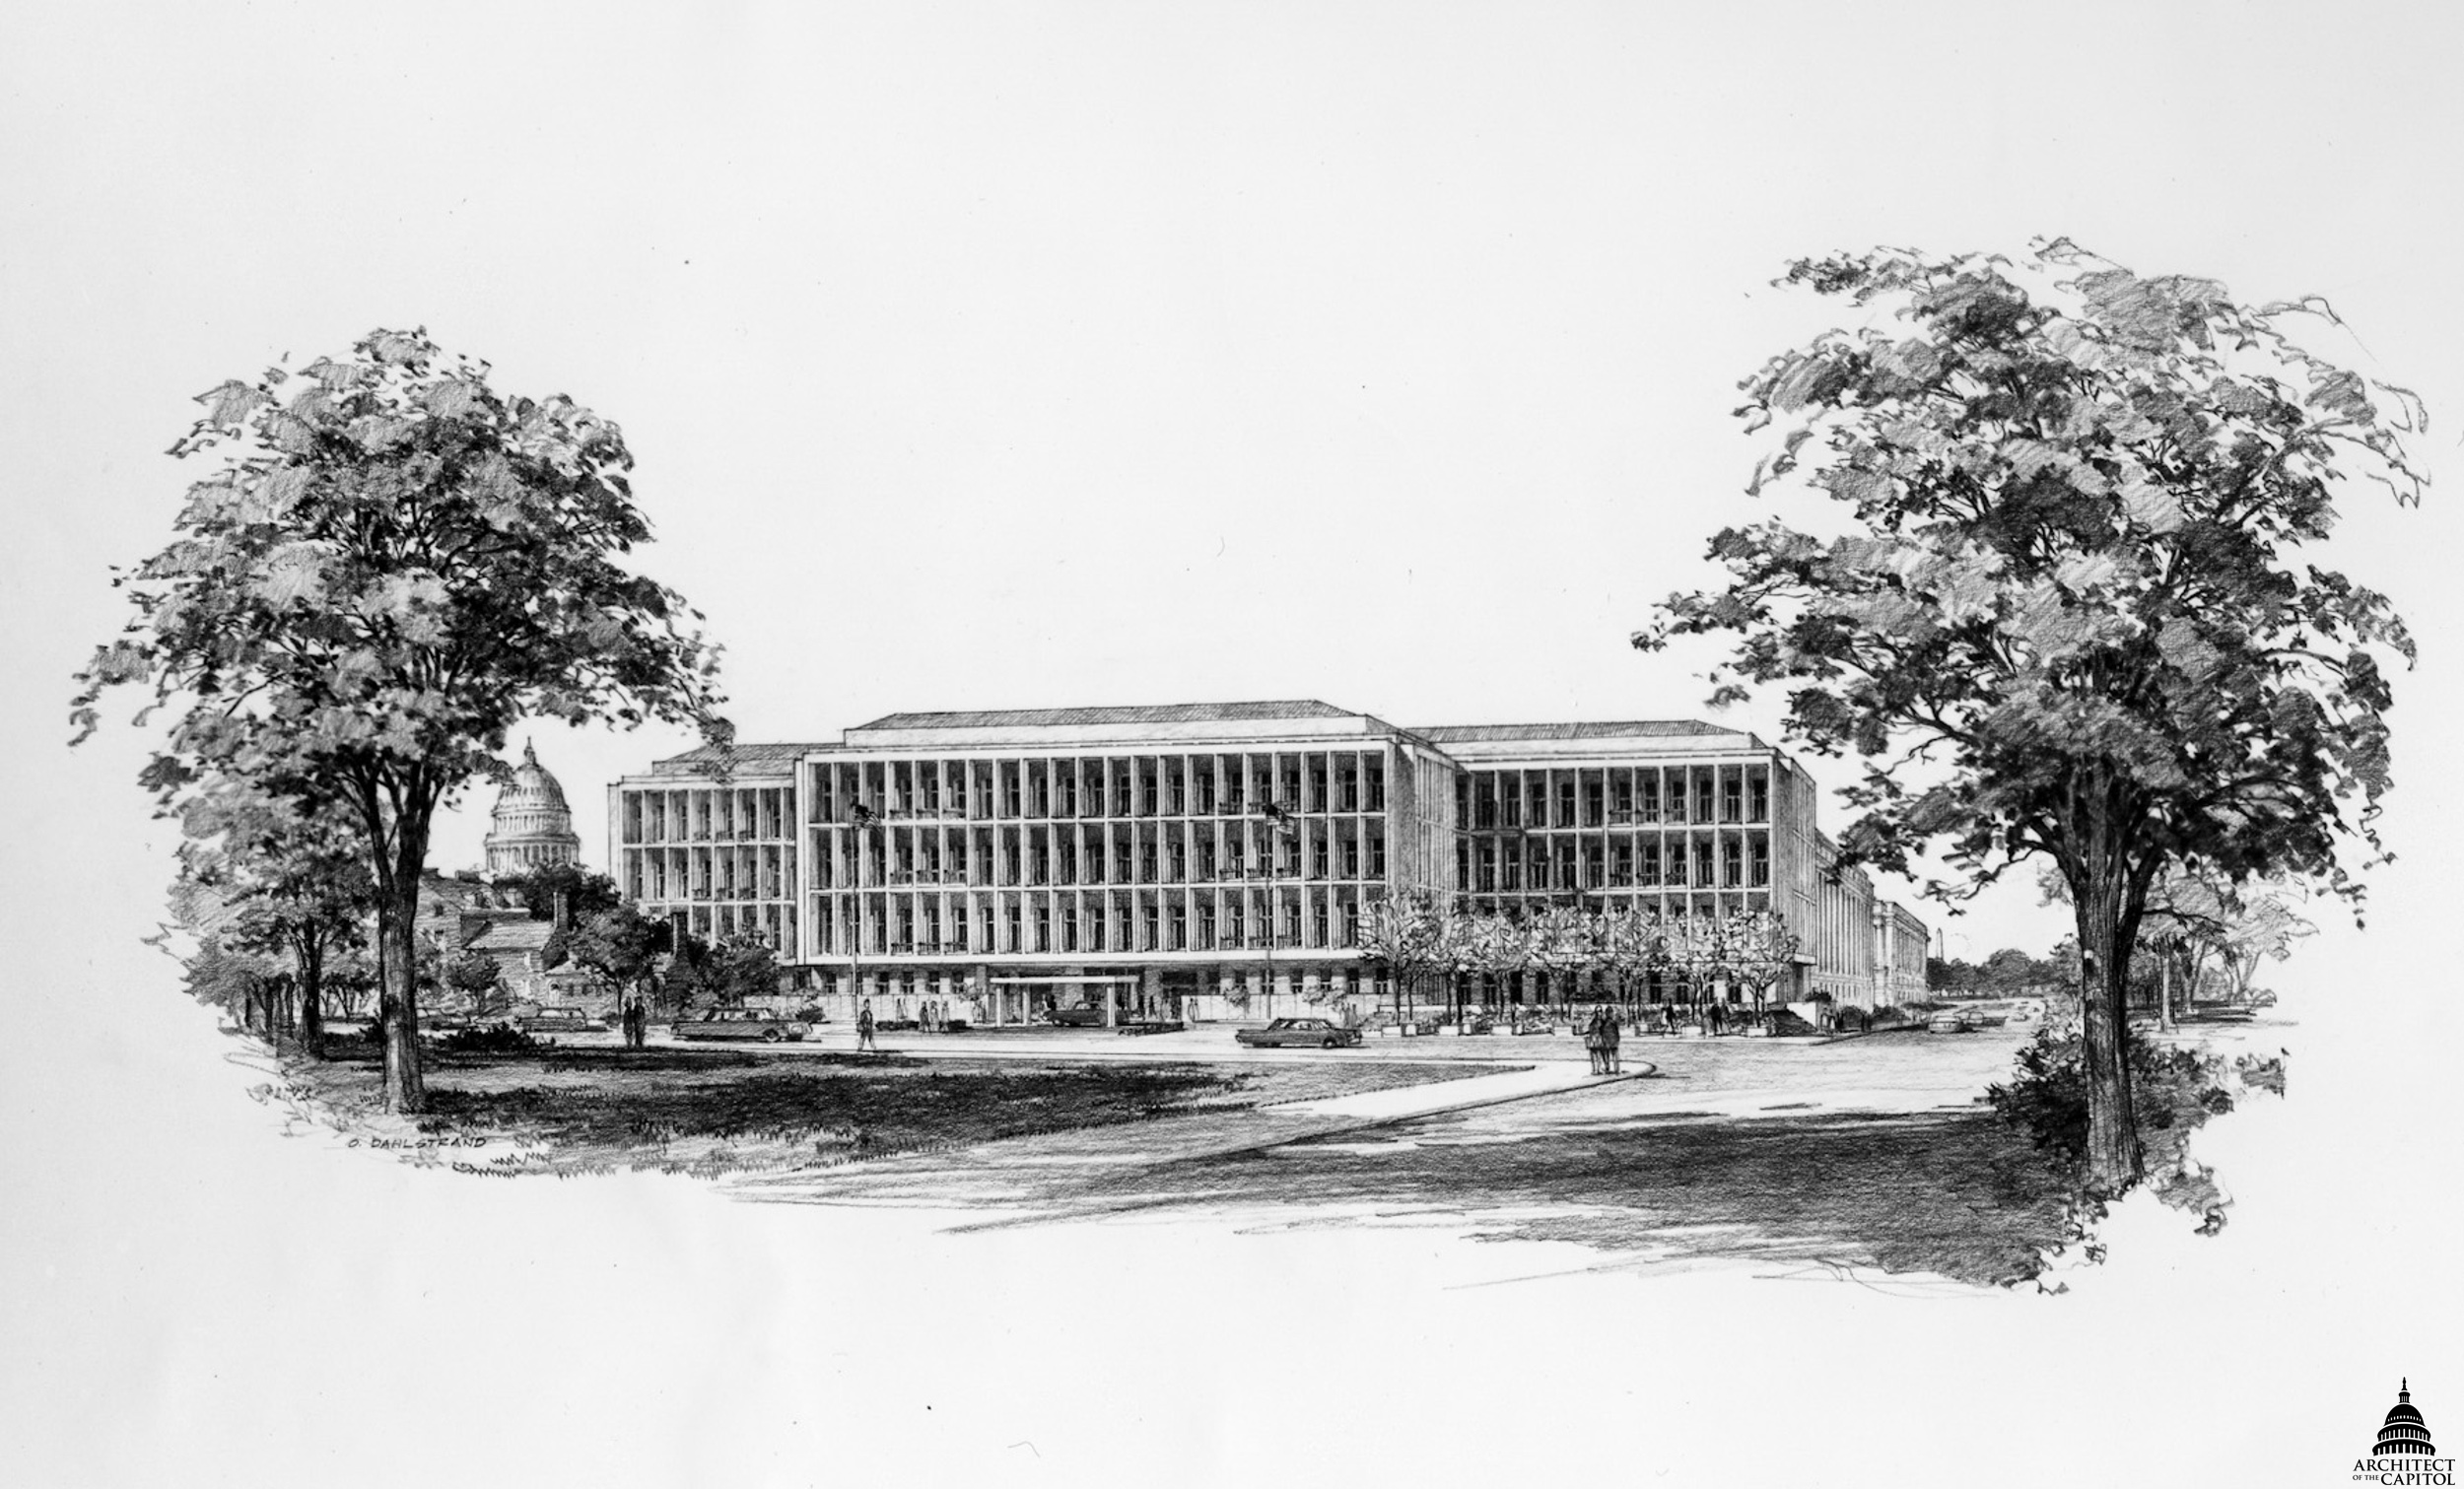 Rendering of the Hart Senate Office Building by architect John Carl Warnecke, 1975.